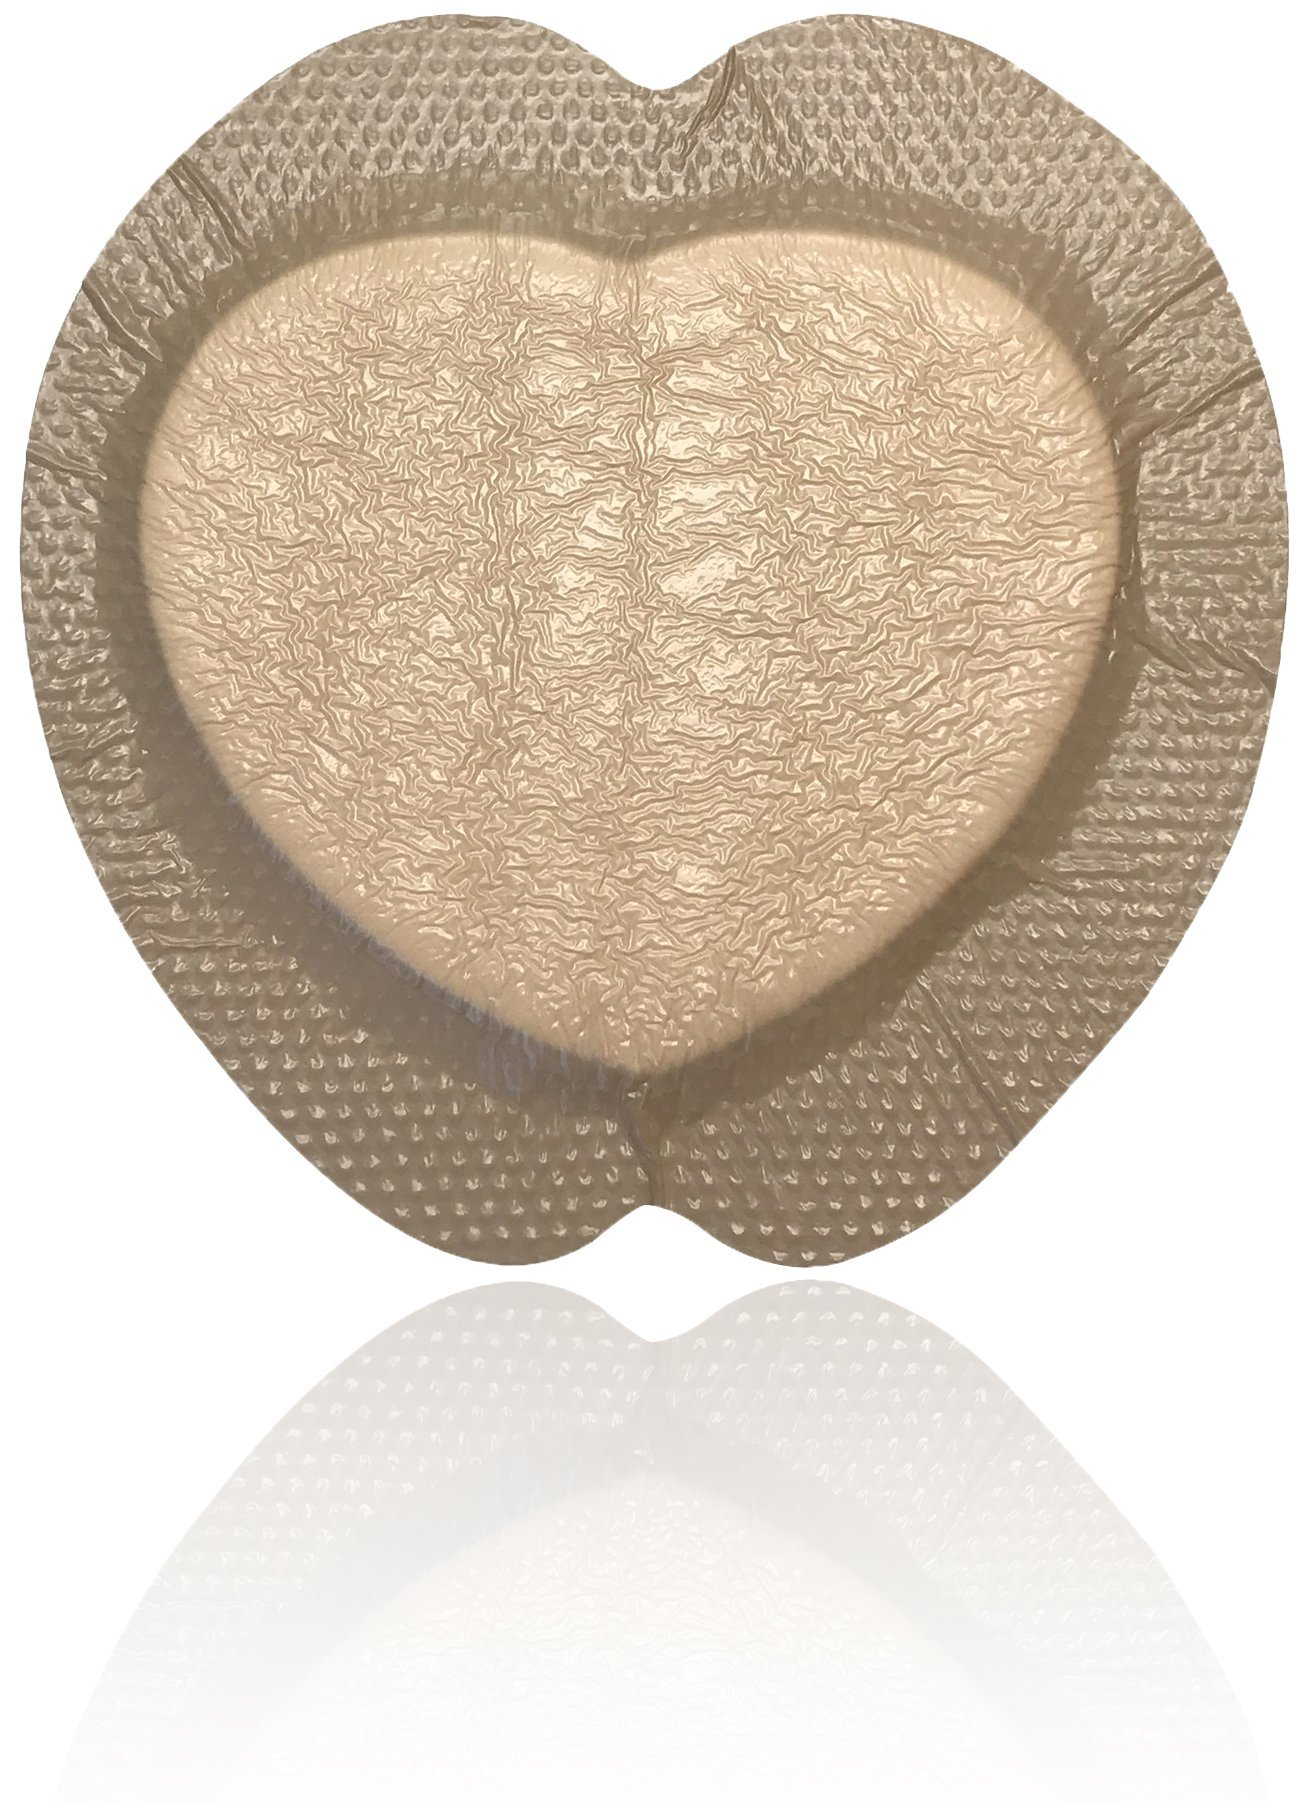 MedVance Silicone - Bordered Sillicone Foam Dressing, Sacral, 7''x7''